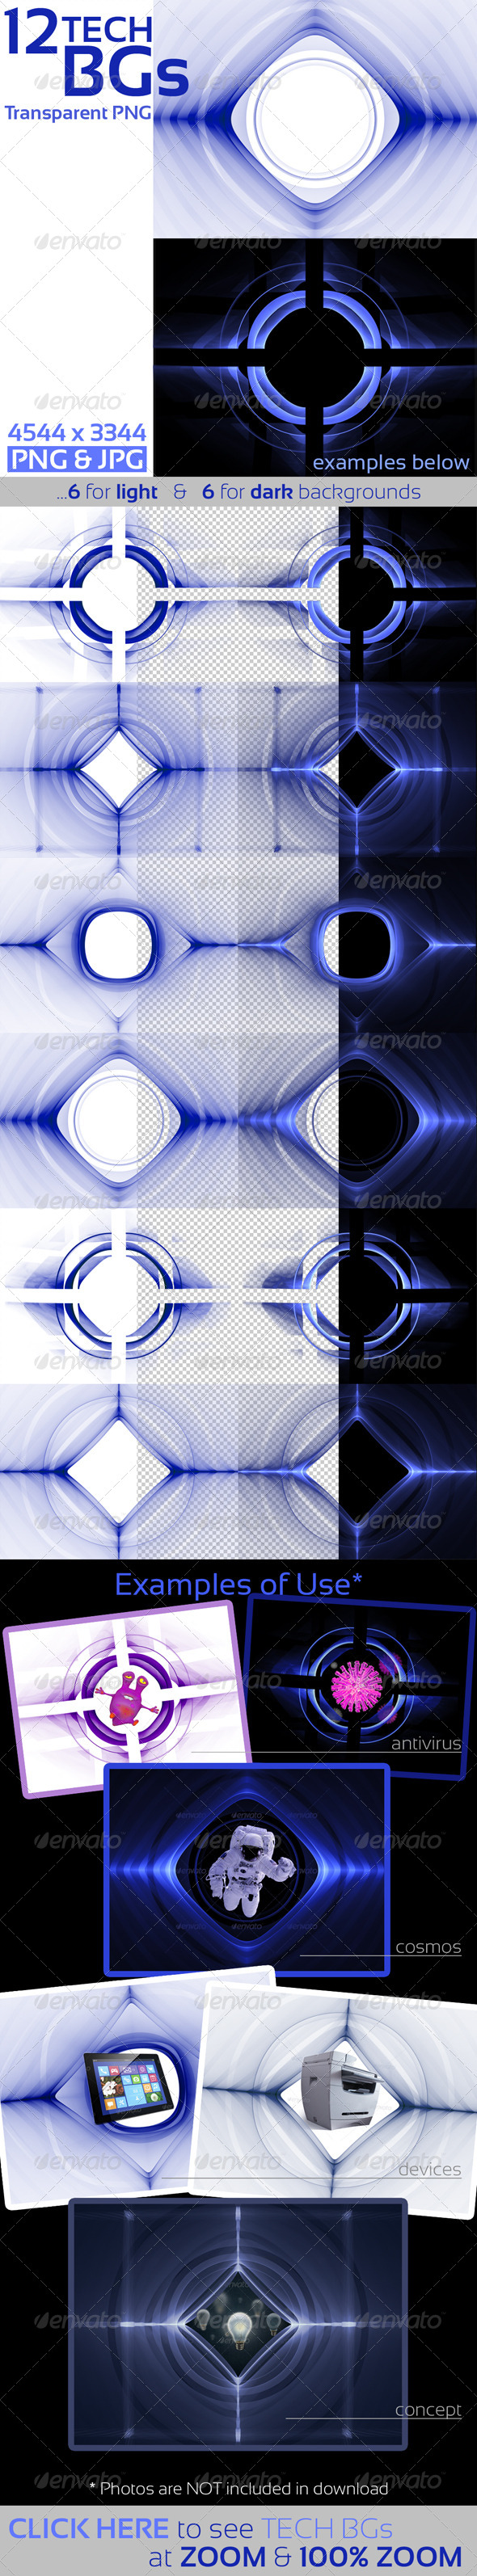 GraphicRiver Tech Templates on Transparent Background 6848899